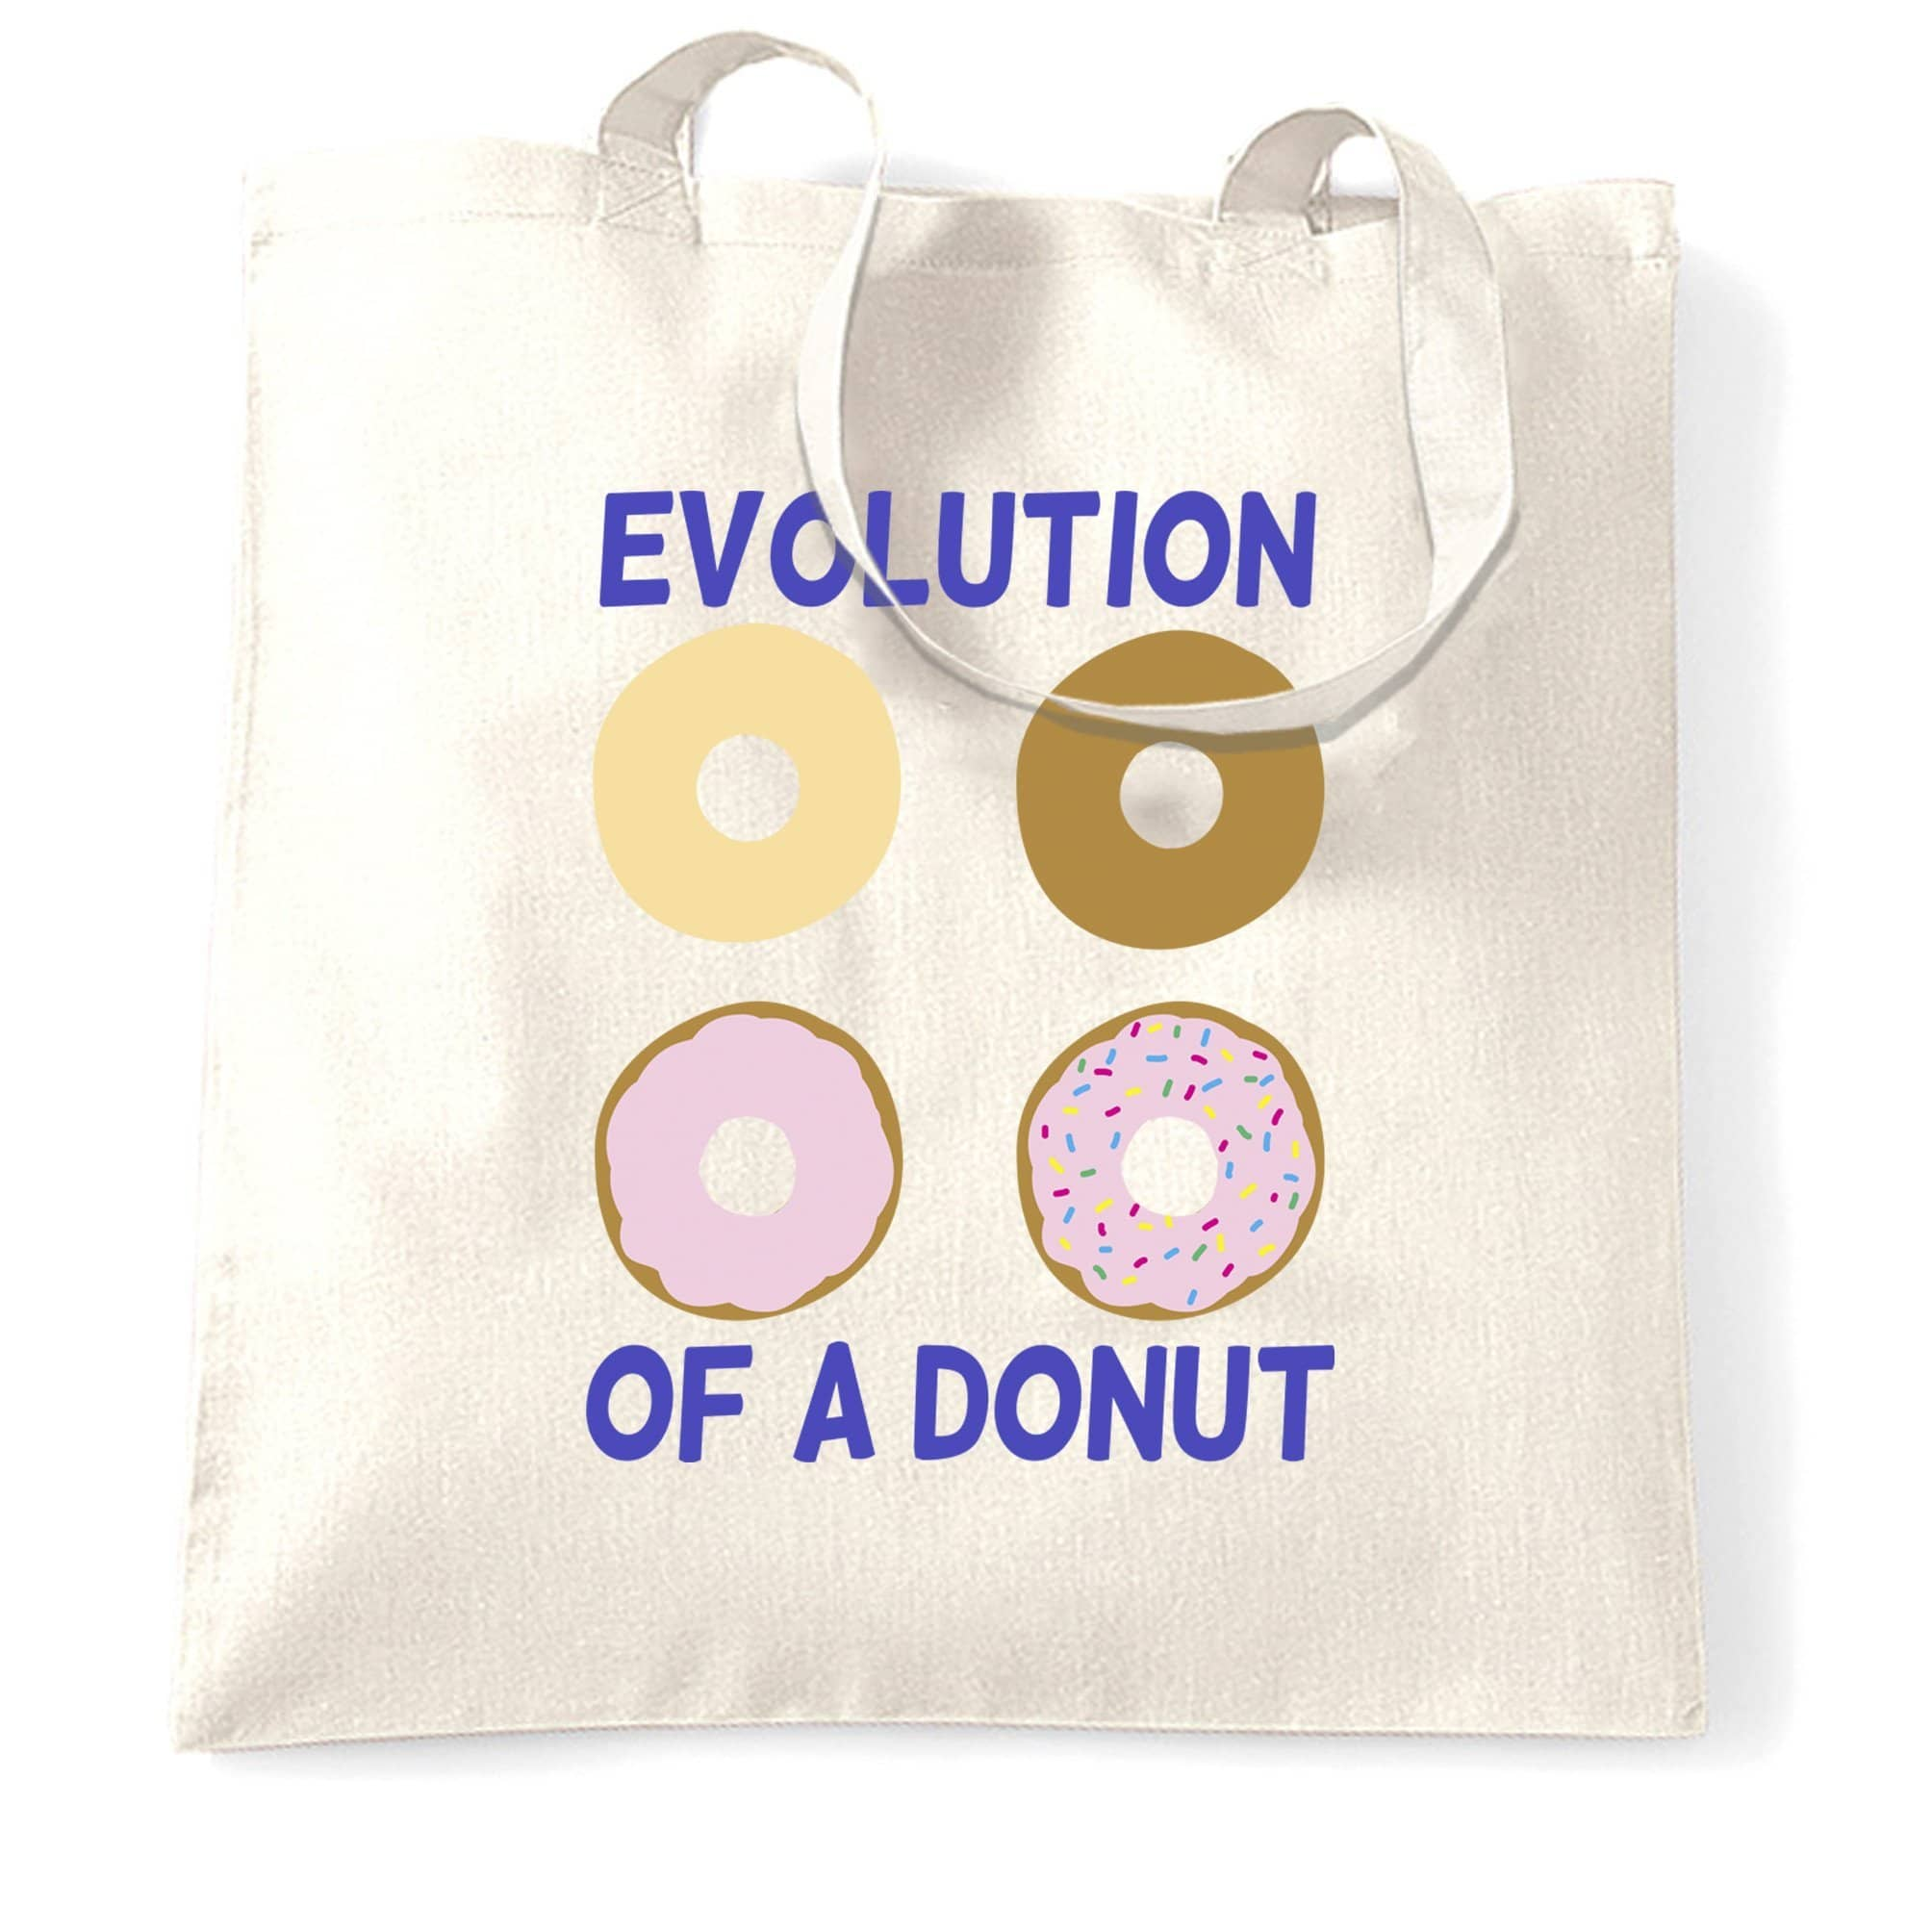 Novelty Food Tote Bag The Evolution Of A Donut